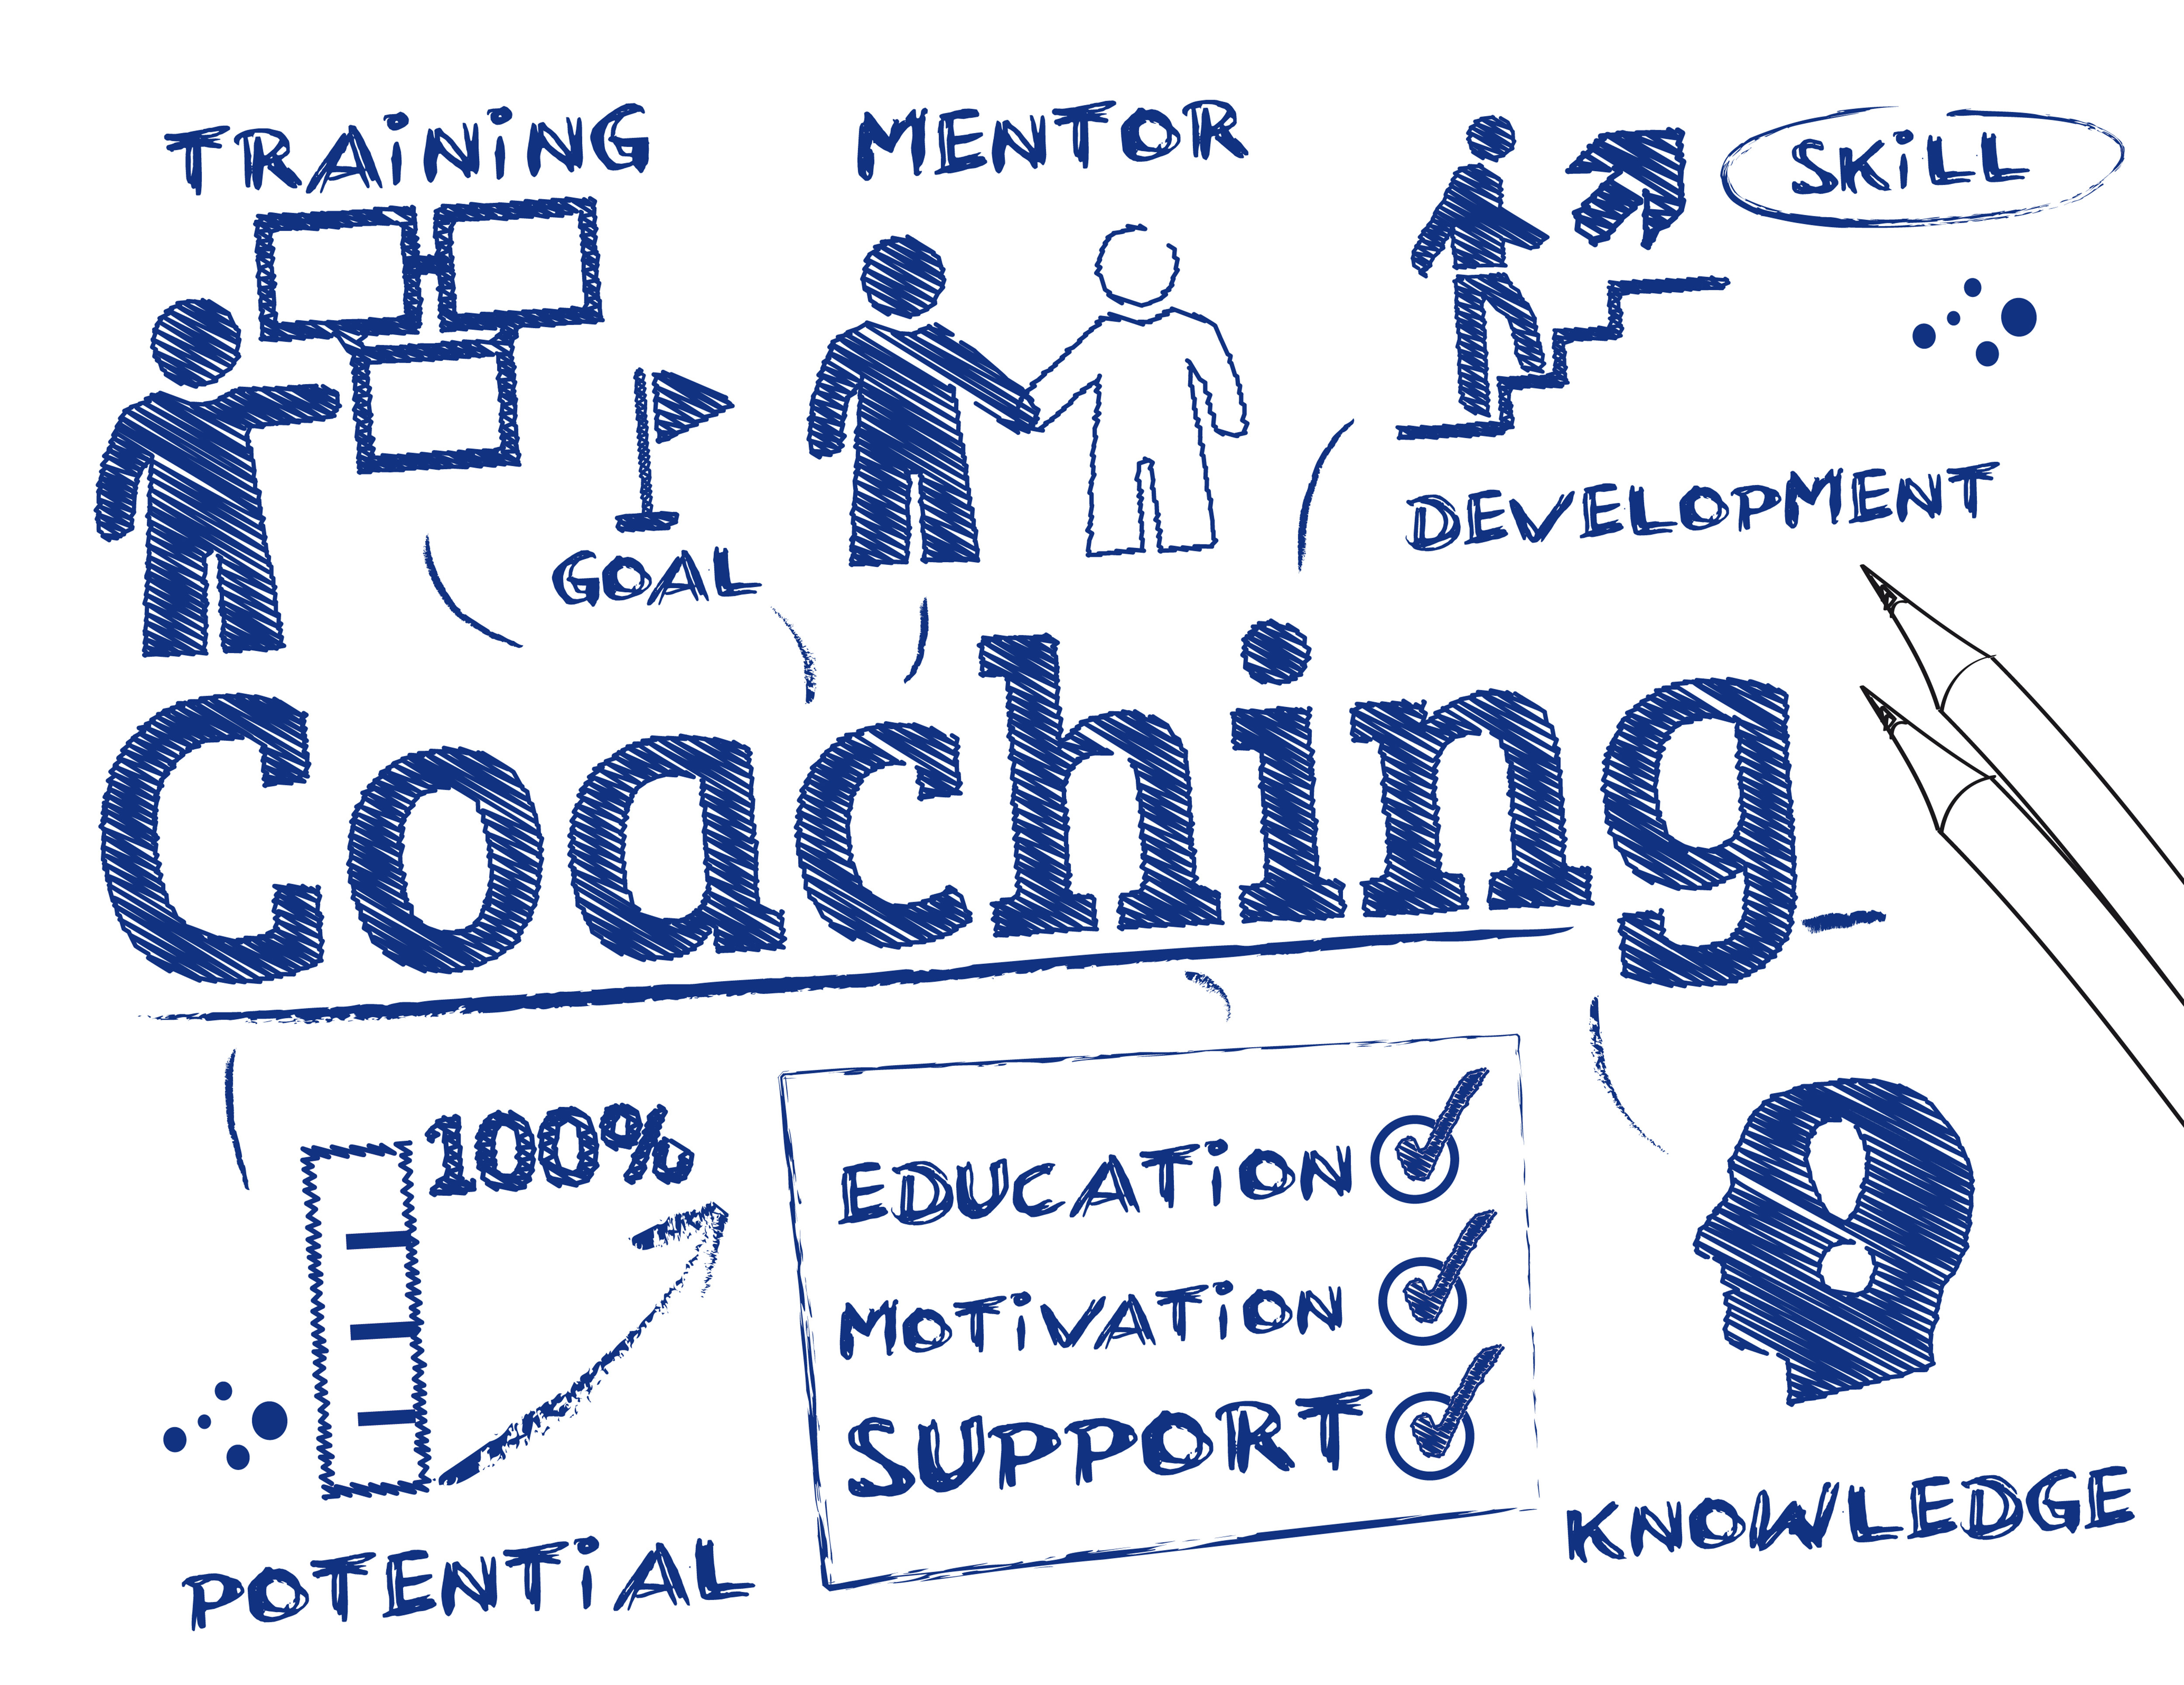 Professional growth from good mentoring